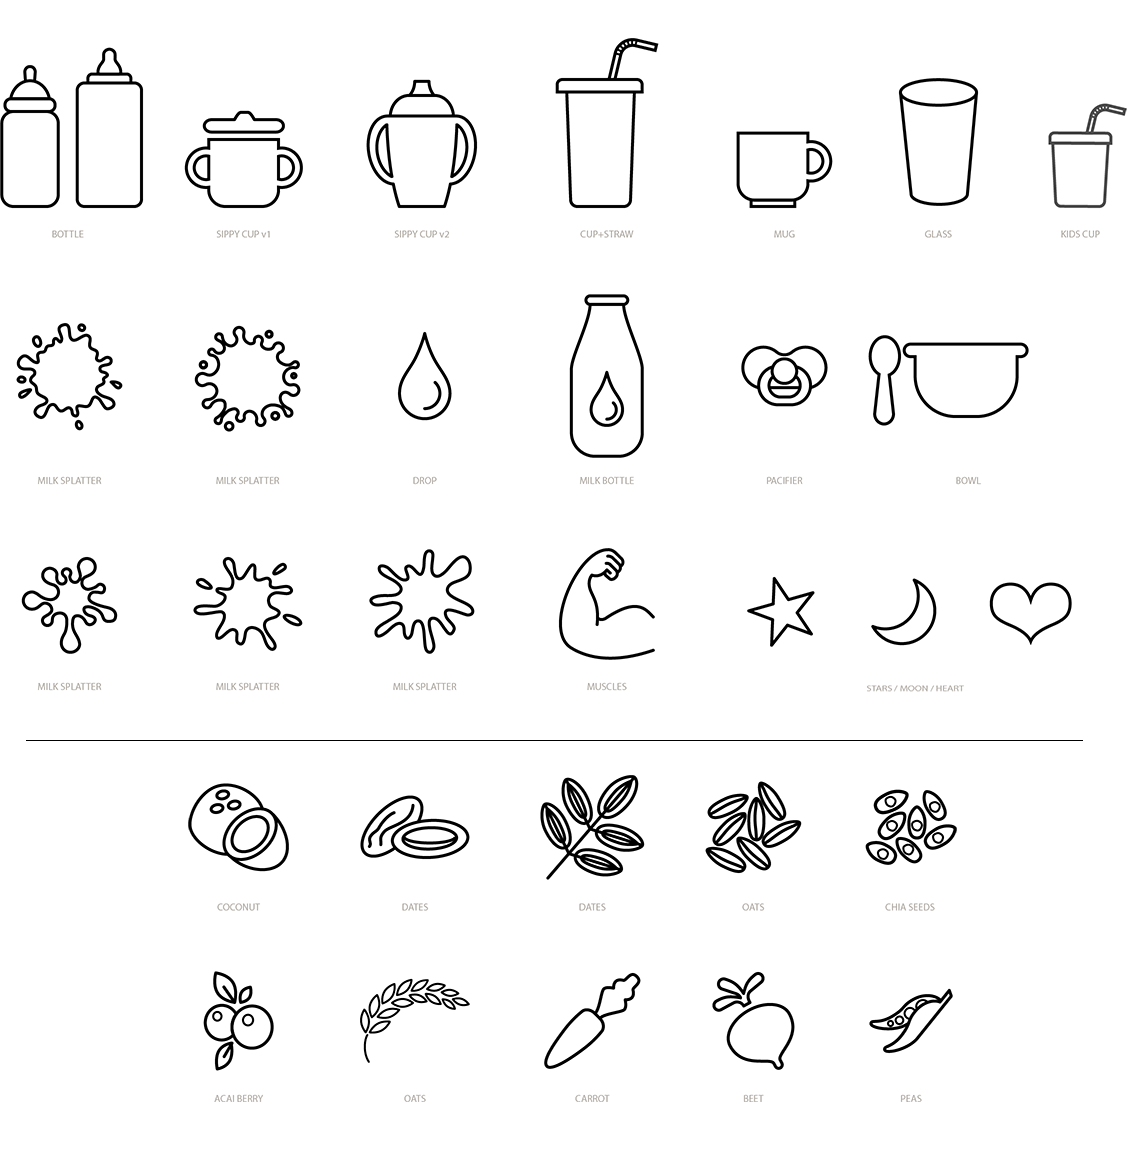 Storytelling and product ingredient iconography